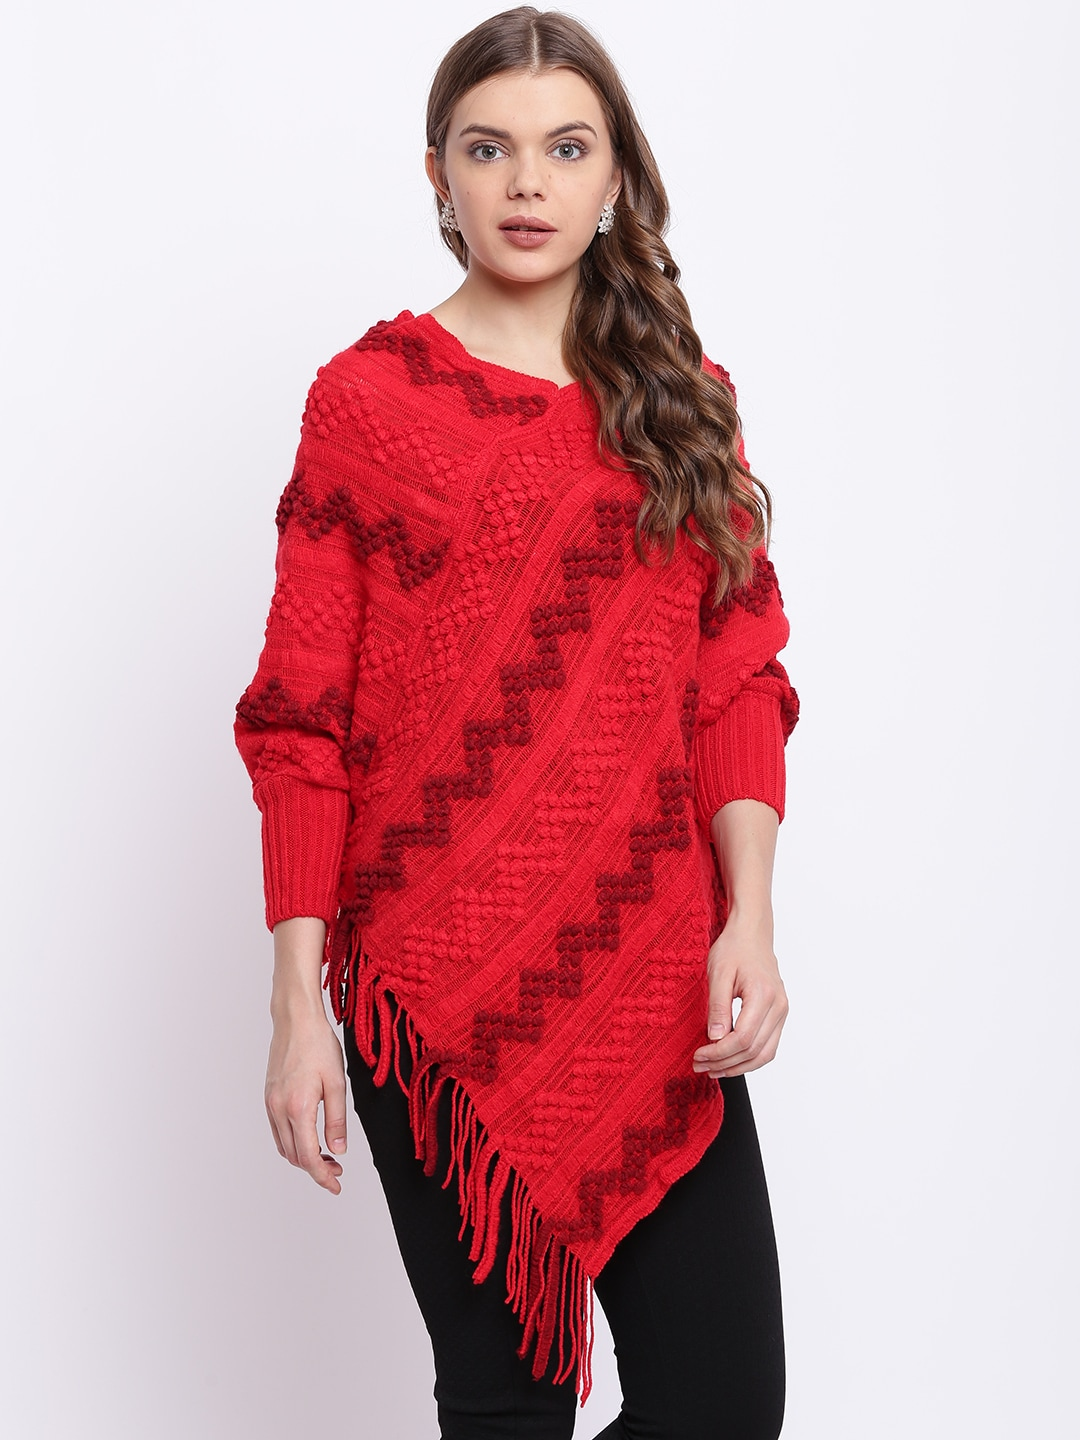 c8ecaf2e8c Poncho - Exclusive Poncho Online Store in India at Myntra